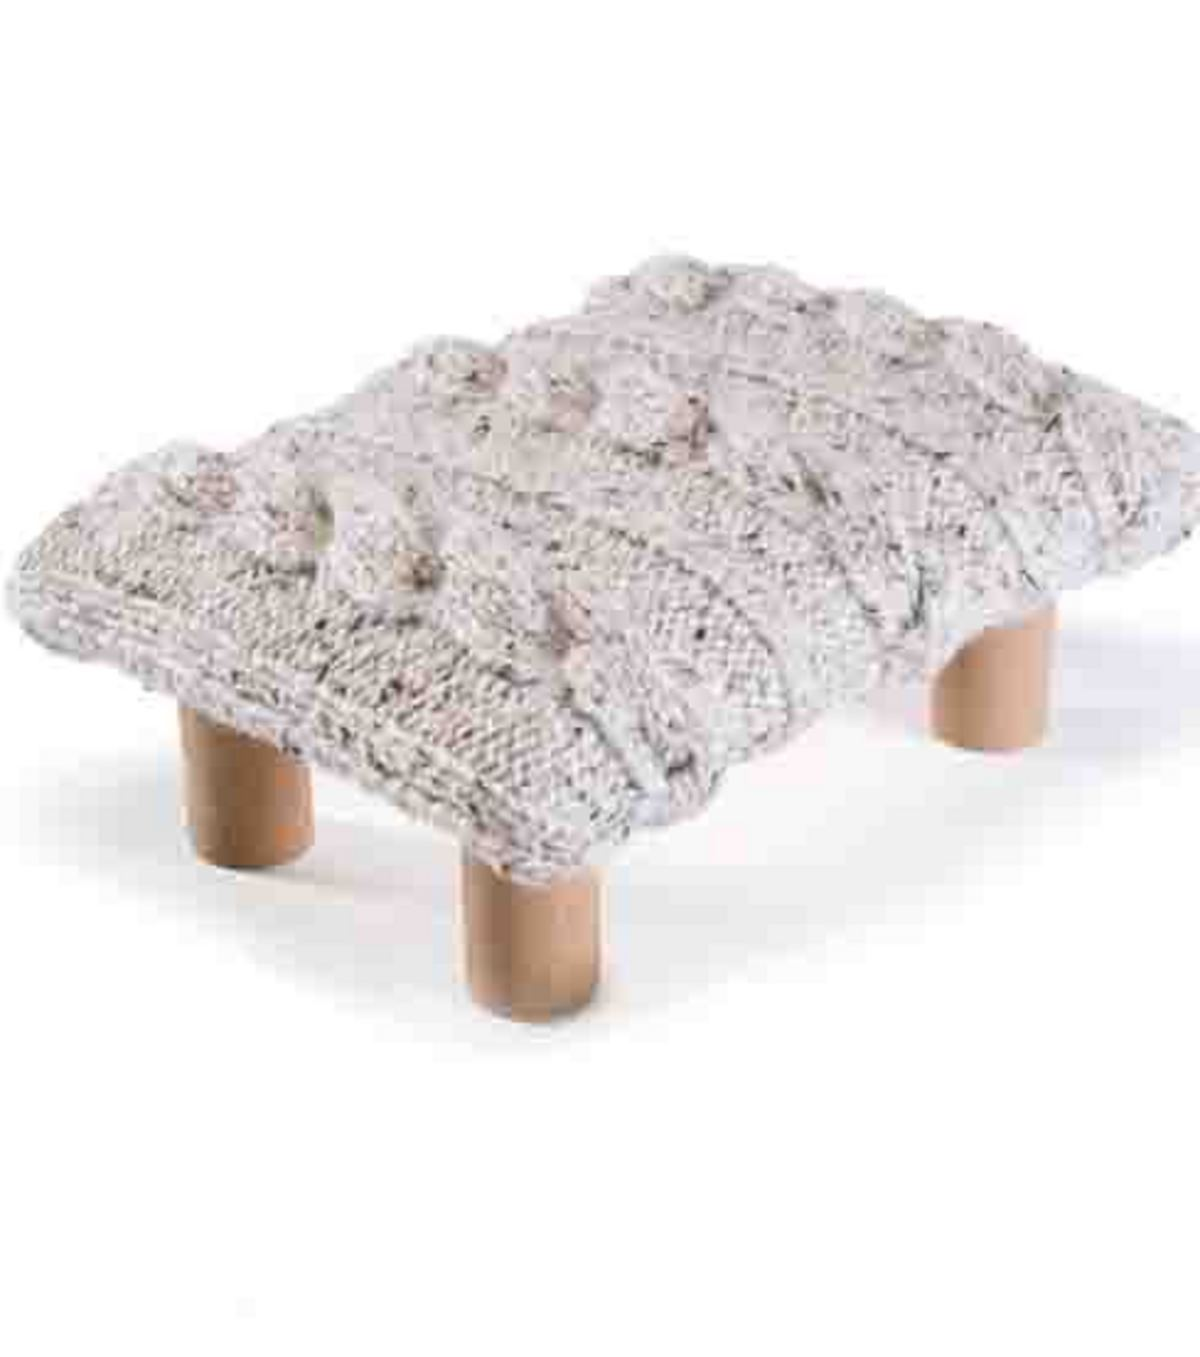 Knit-Top Footstool